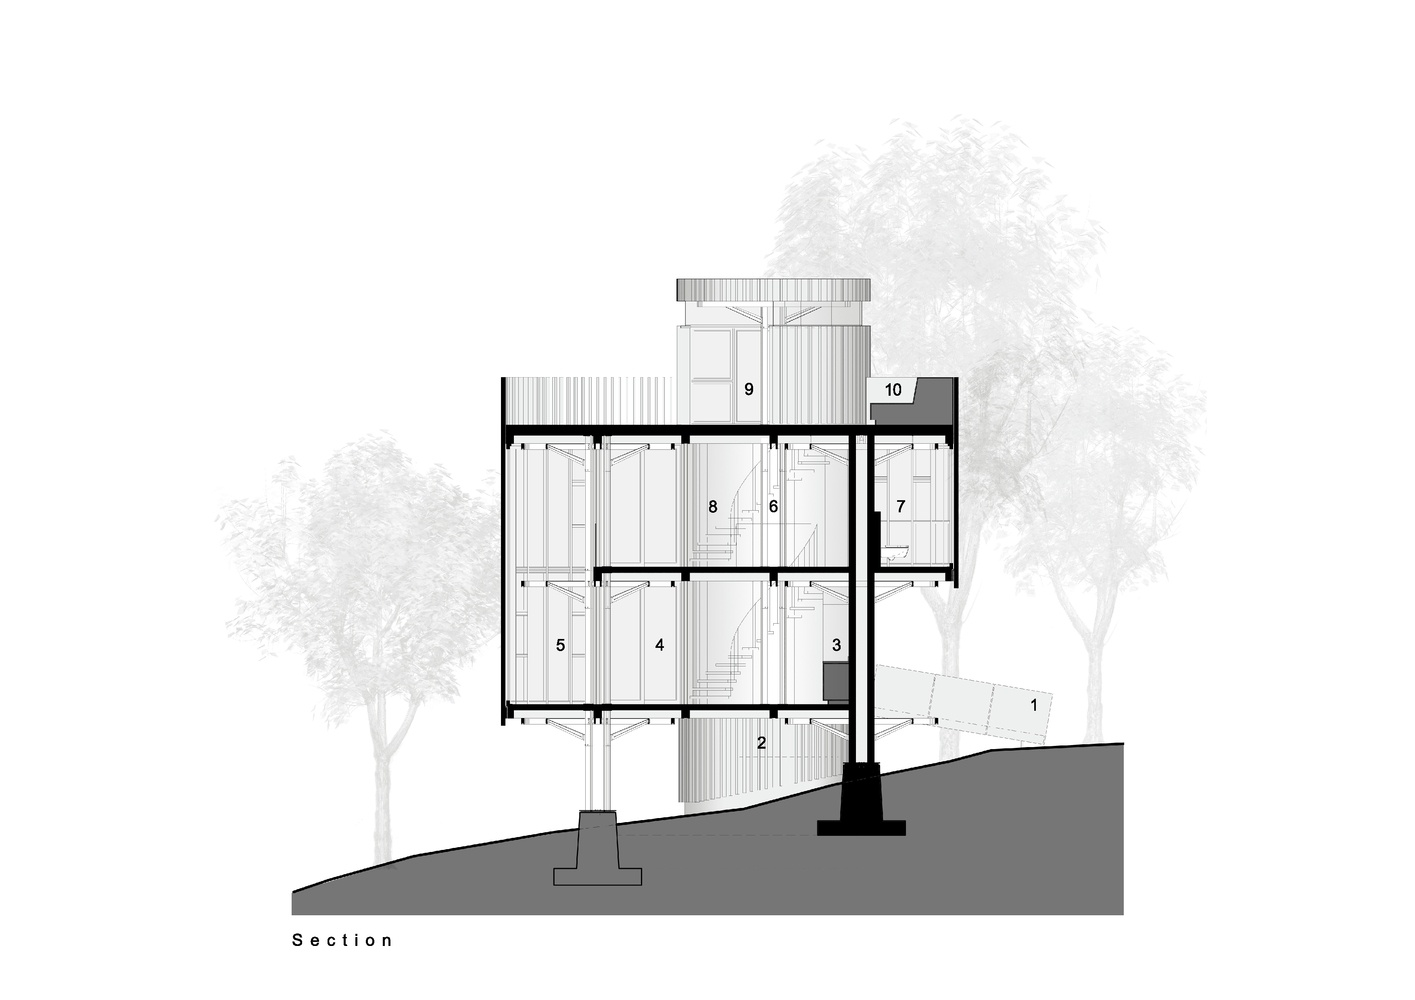 house_paarman_-_tree_house_section0001